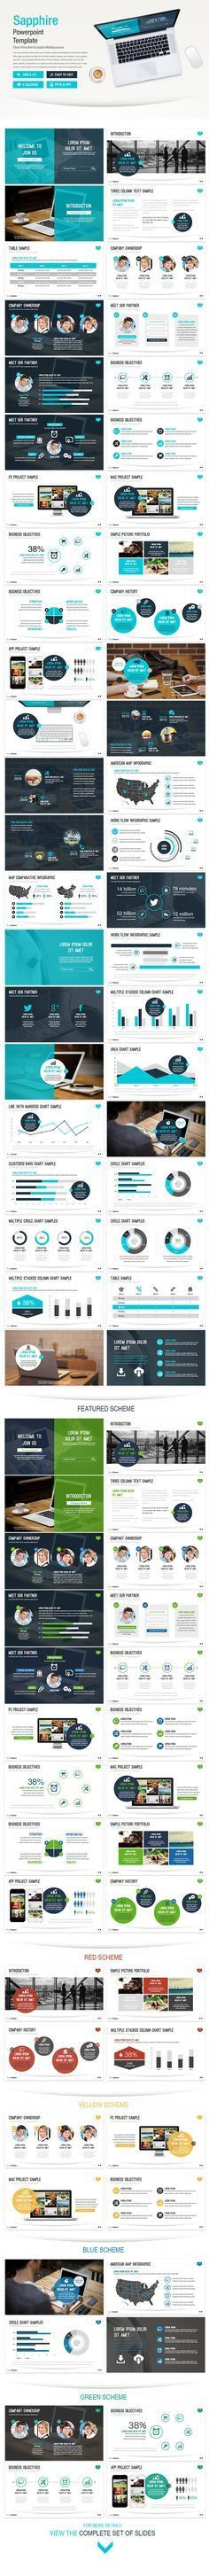 Creative Presentation (Powerpoint Templates) | Creative ...